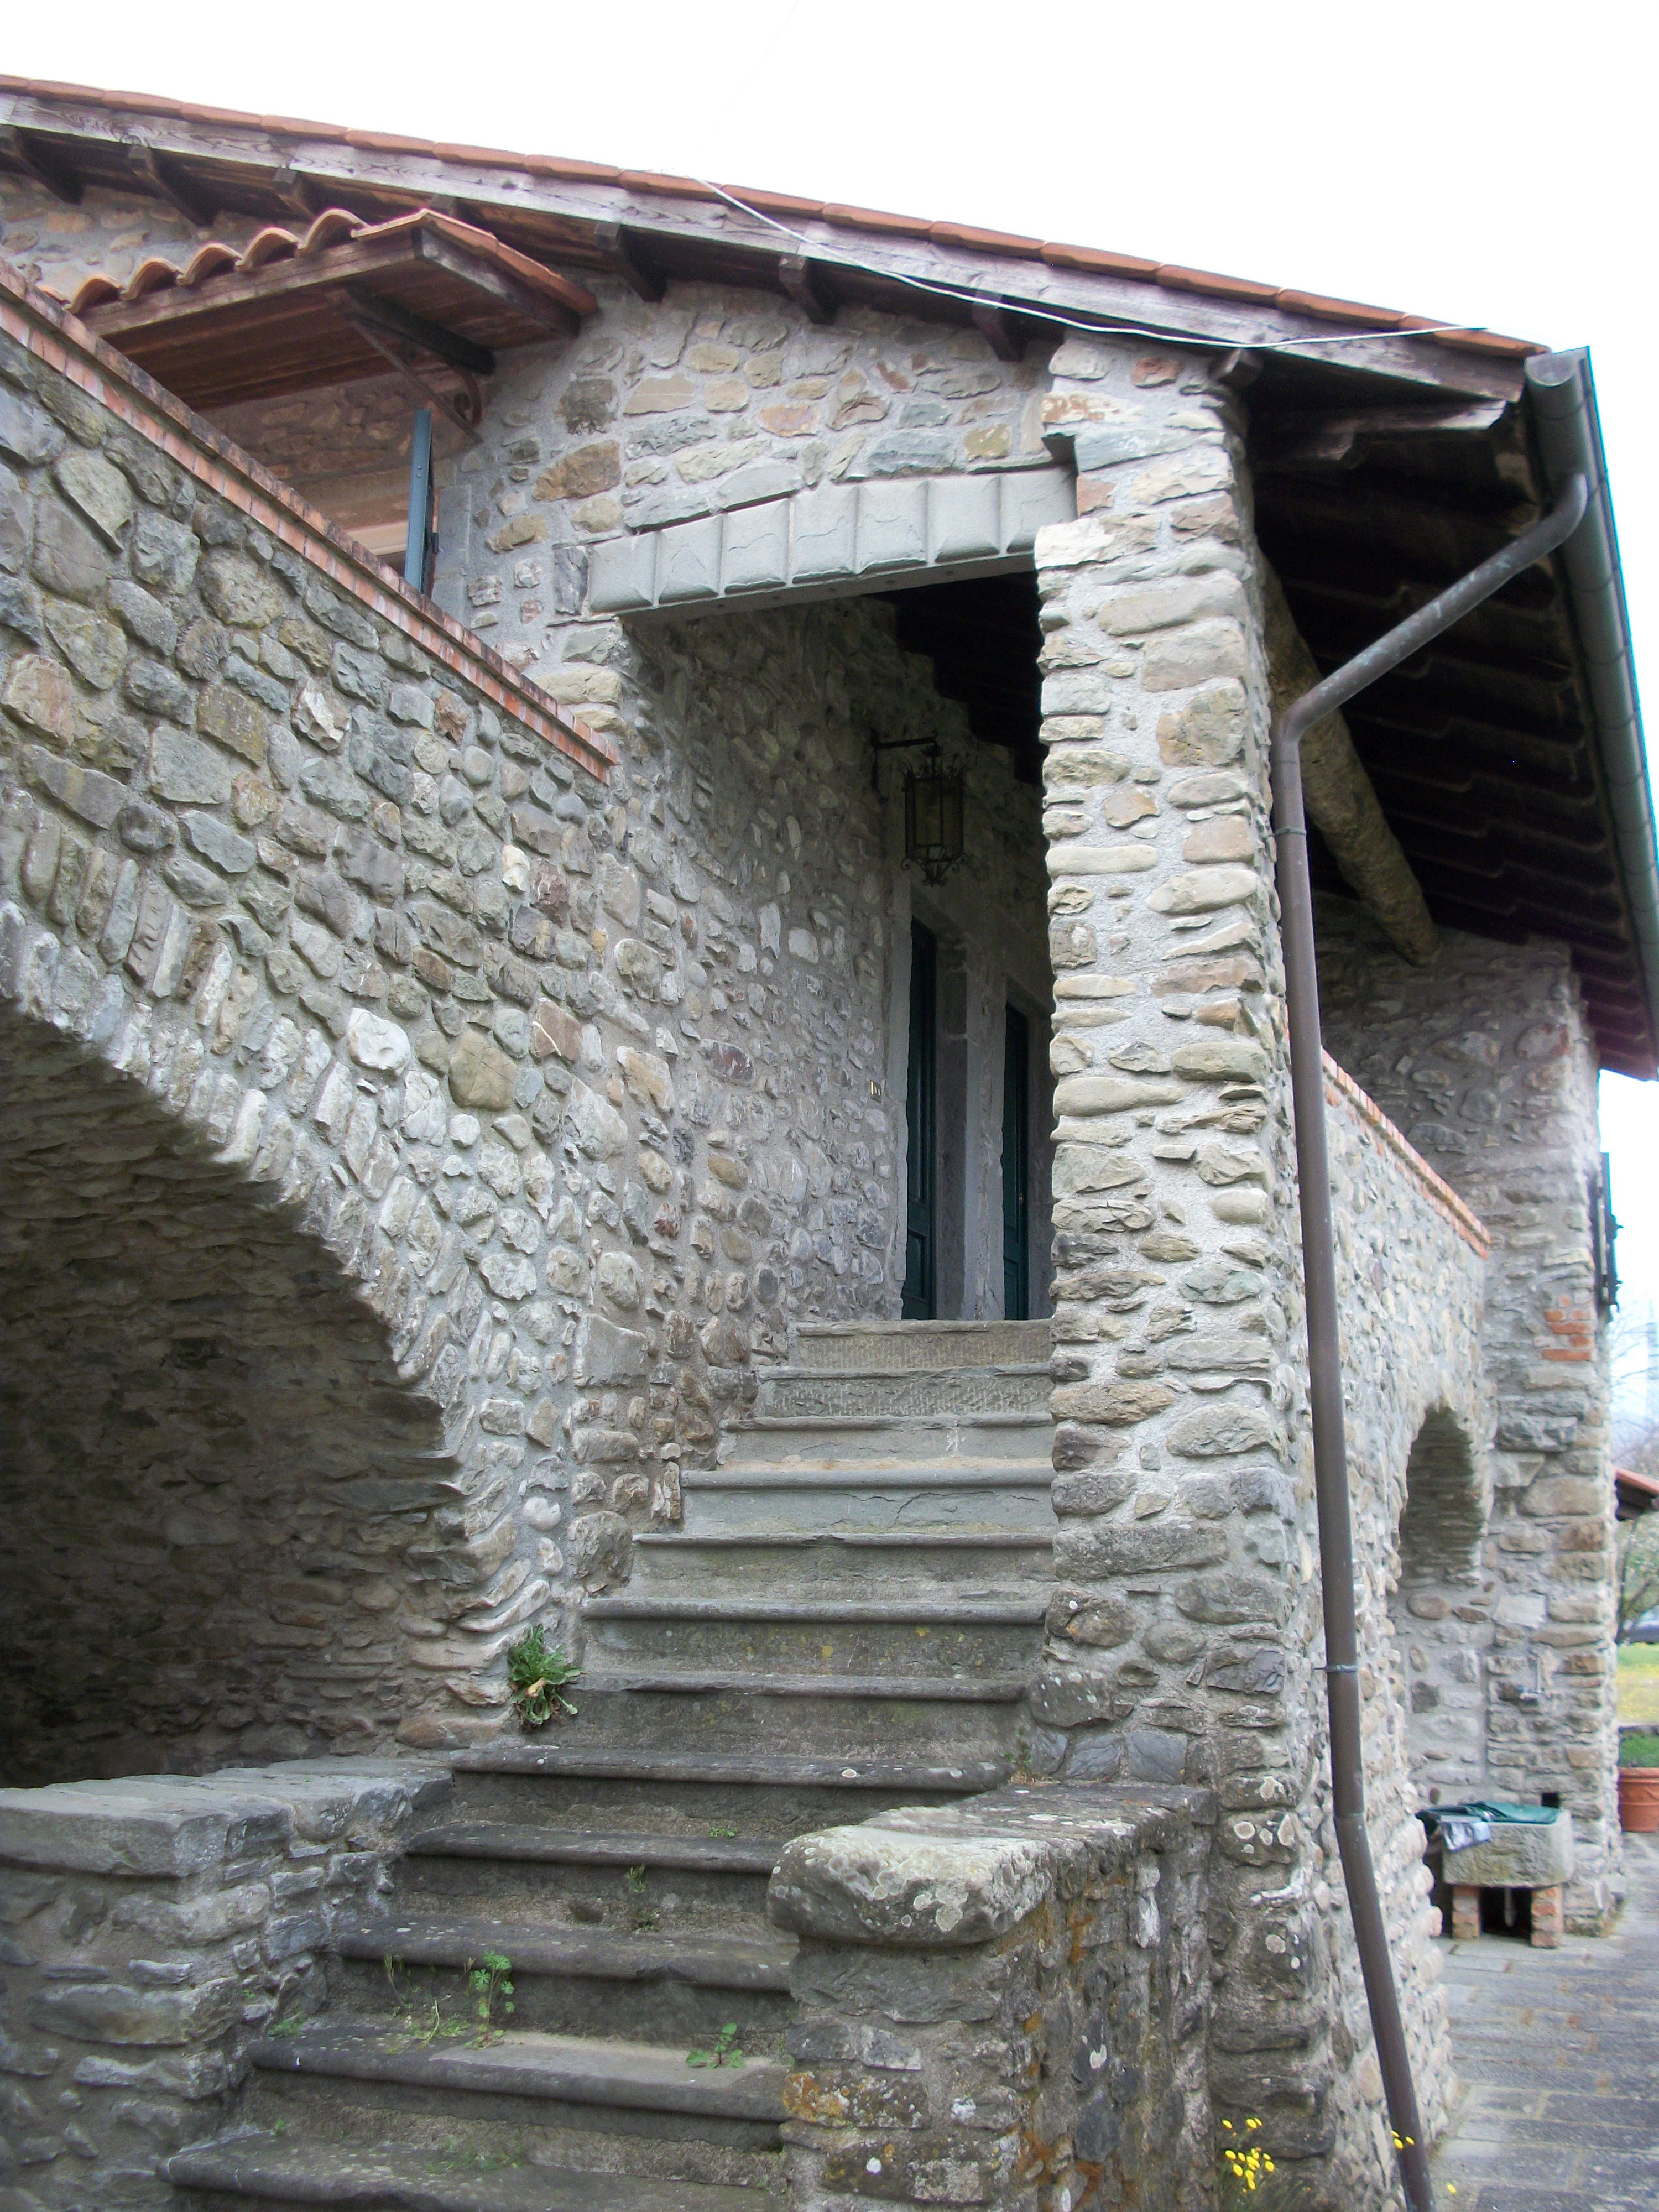 Stairs up to Gradile